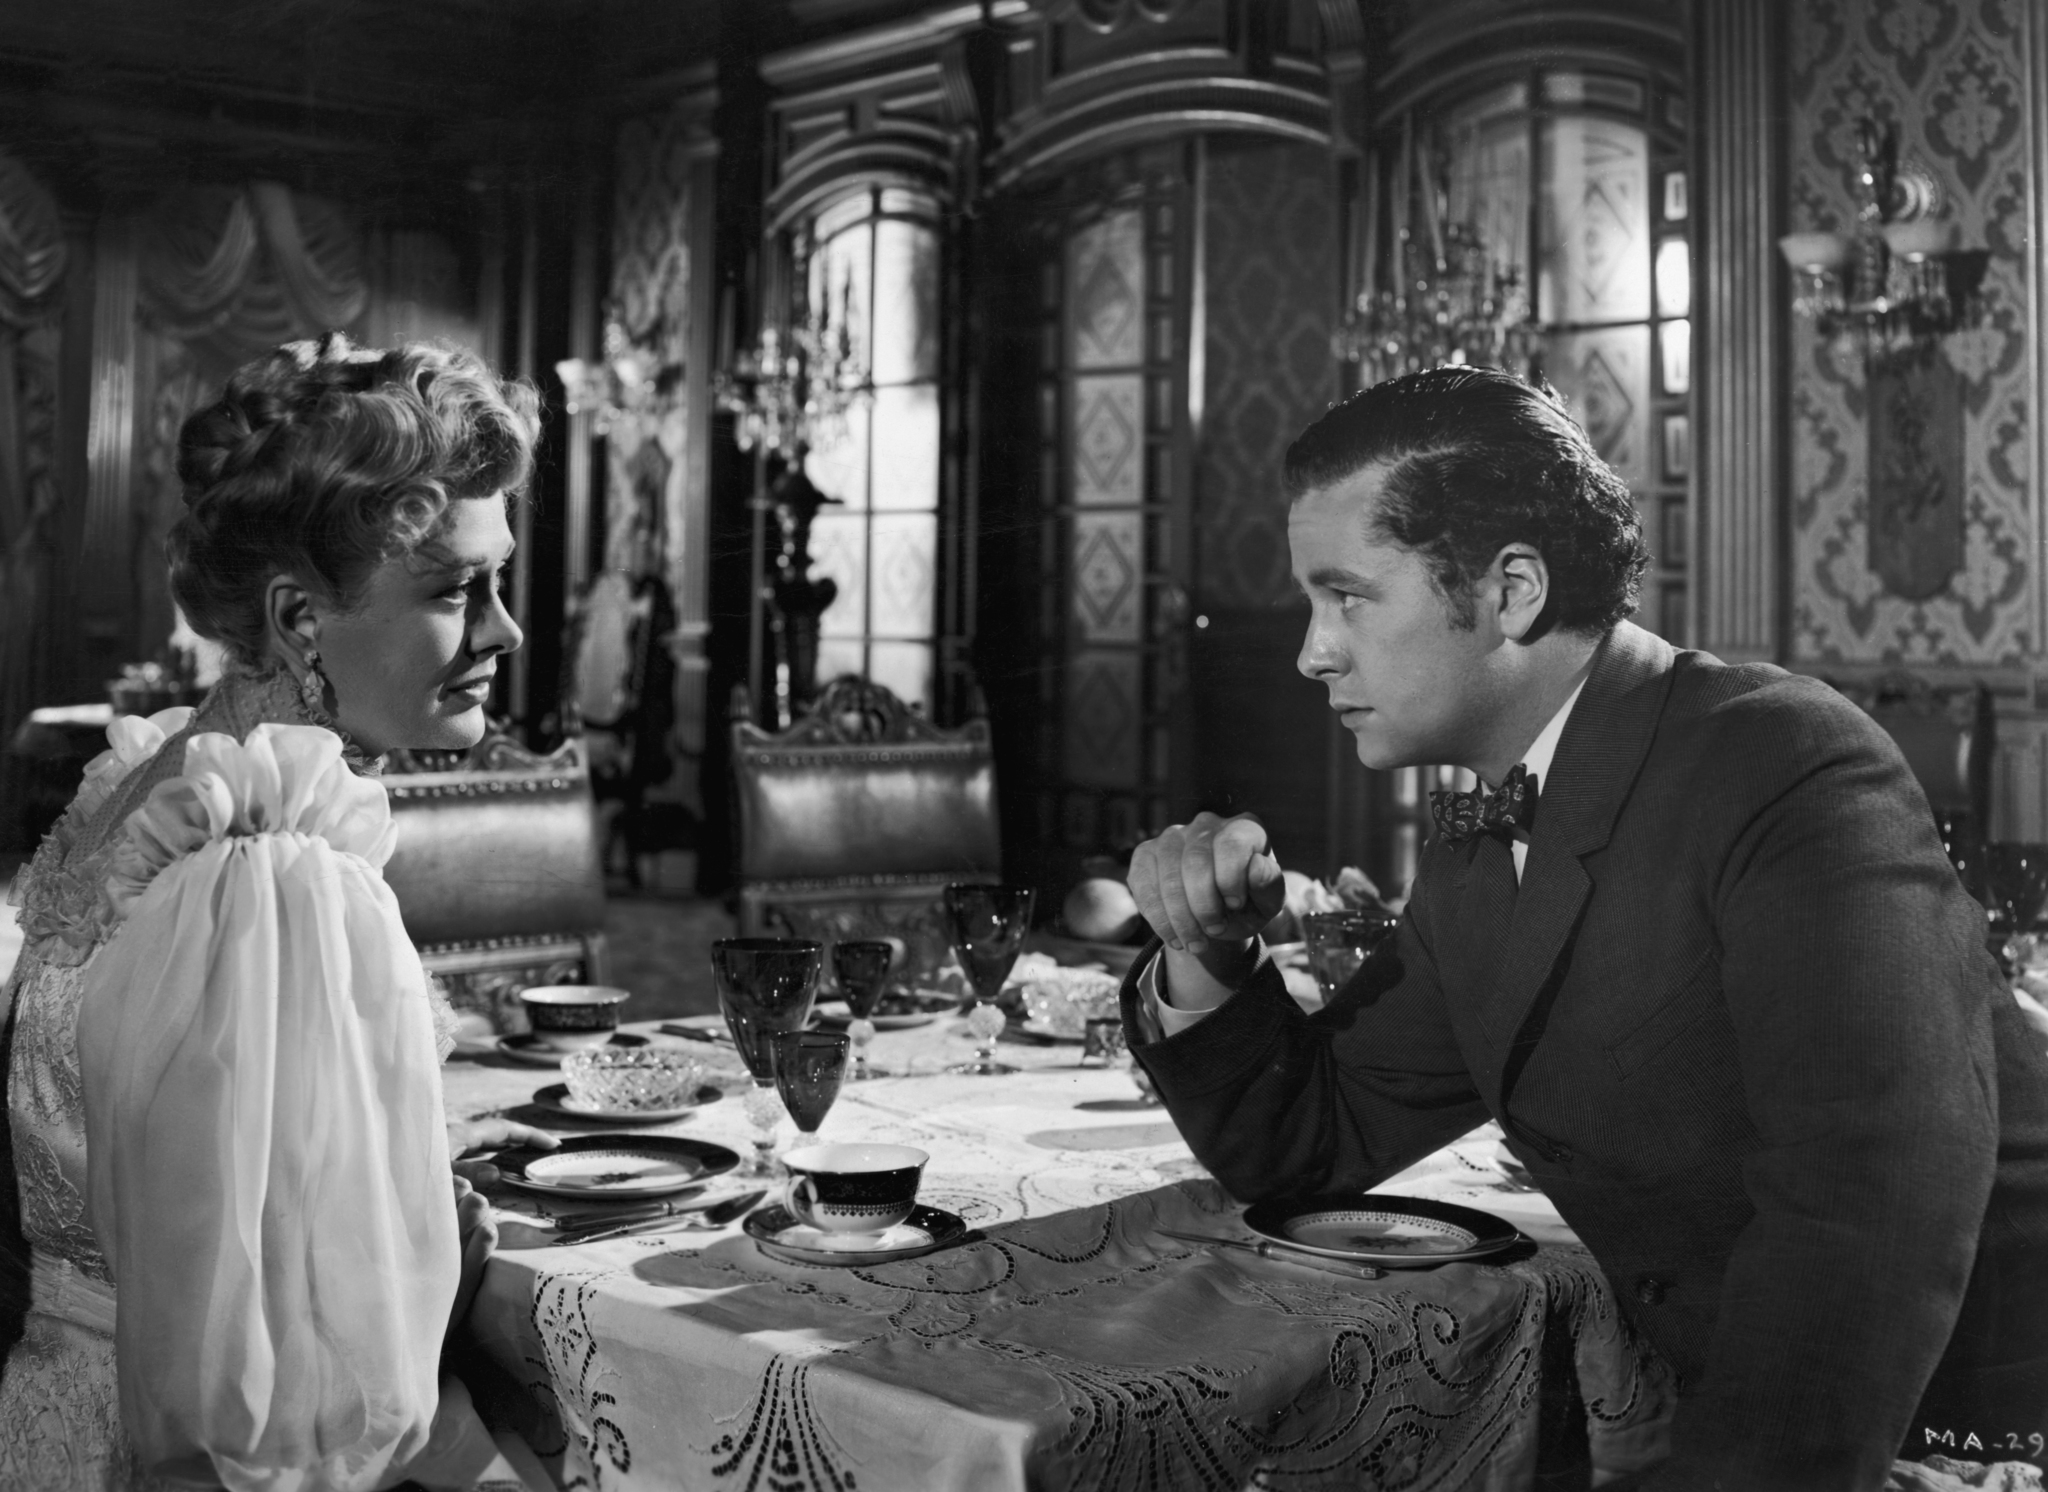 Dolores Costello and Tim Holt in The Magnificent Ambersons (1942)